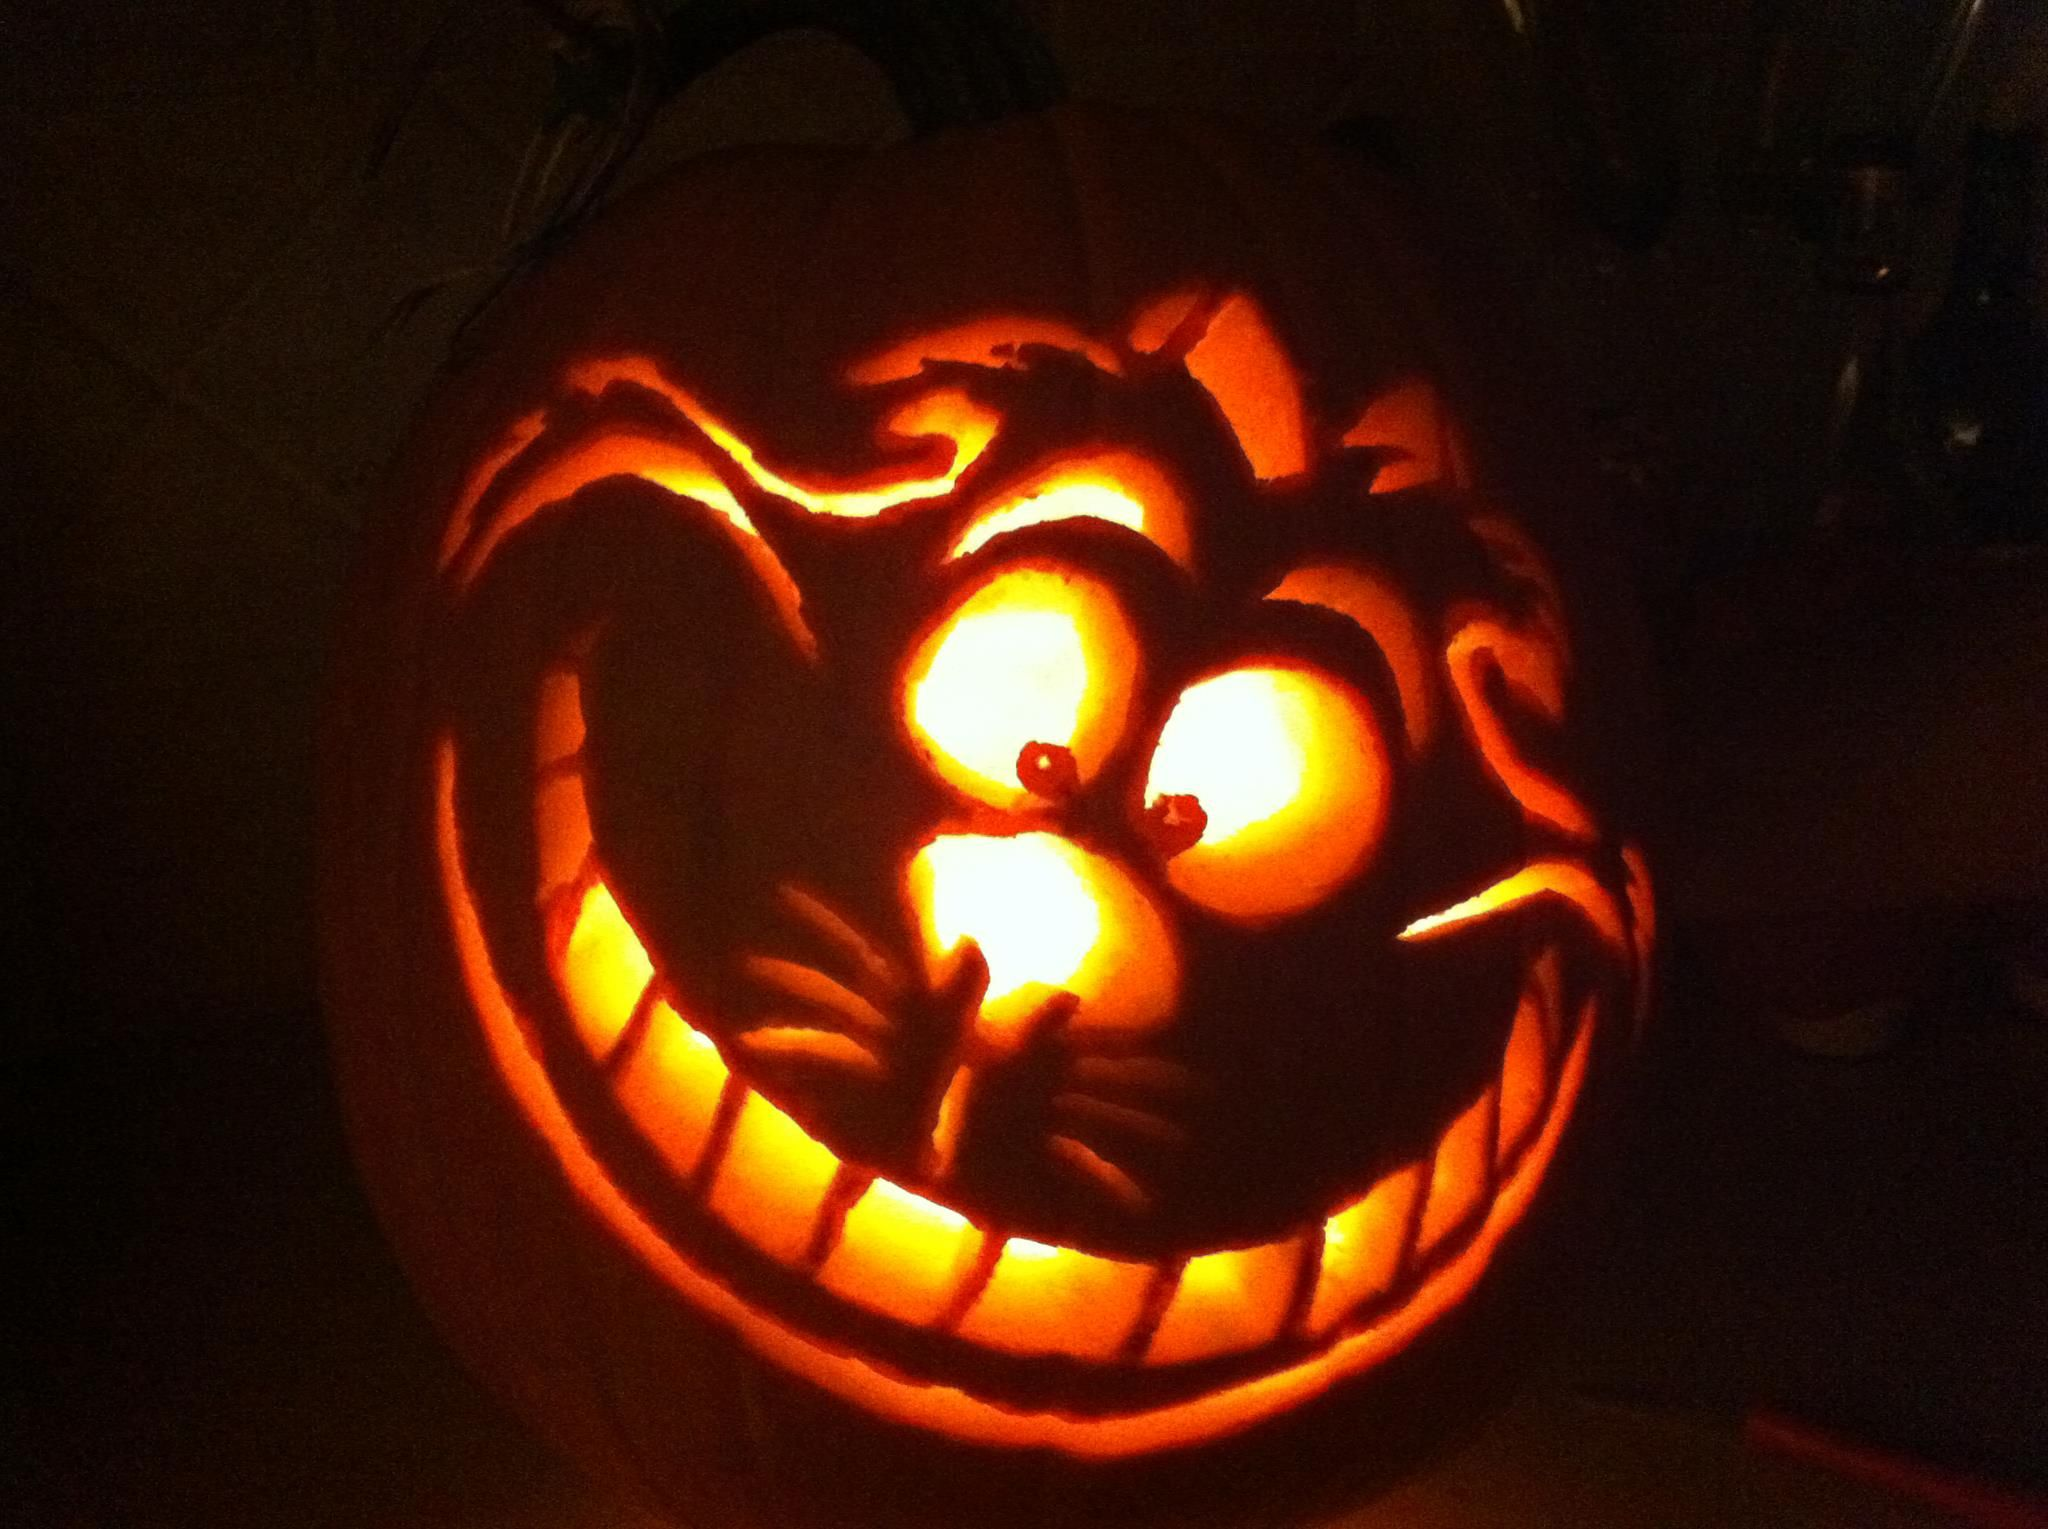 Cheshire cat so much fun carving this pumpkin